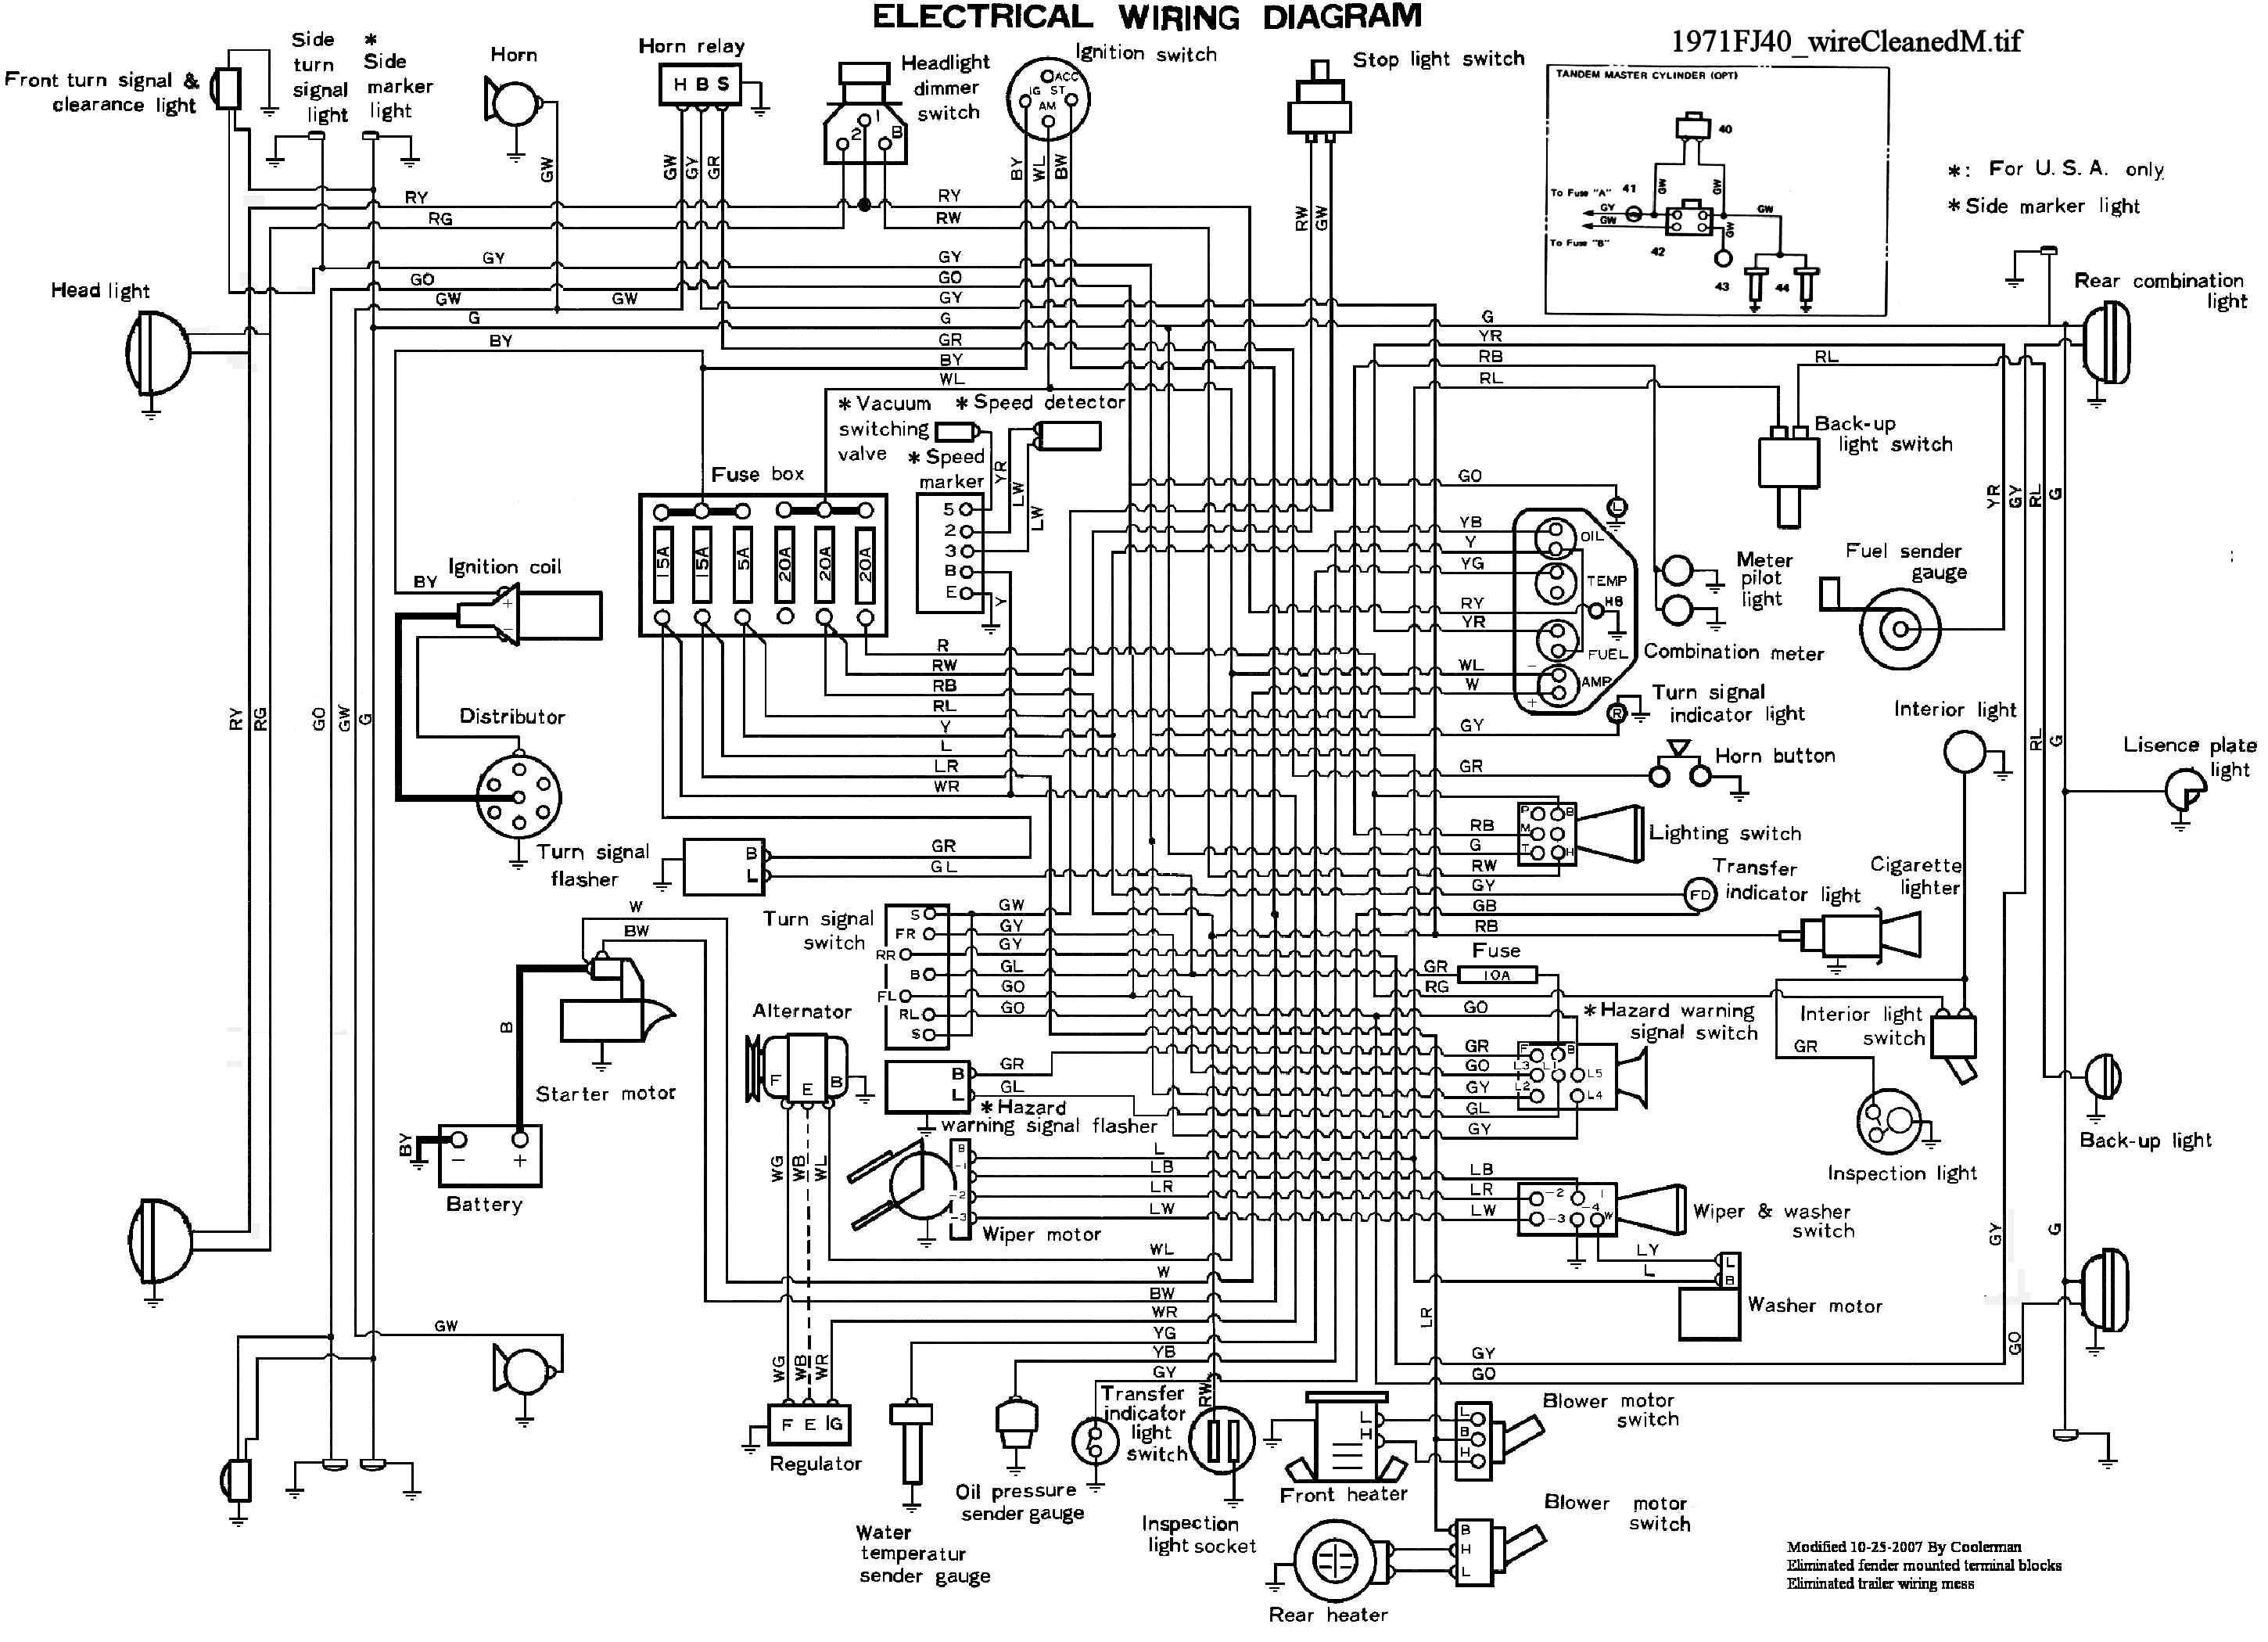 fj40 wiring diagram wiring diagram todaysfj40 wiring diagram